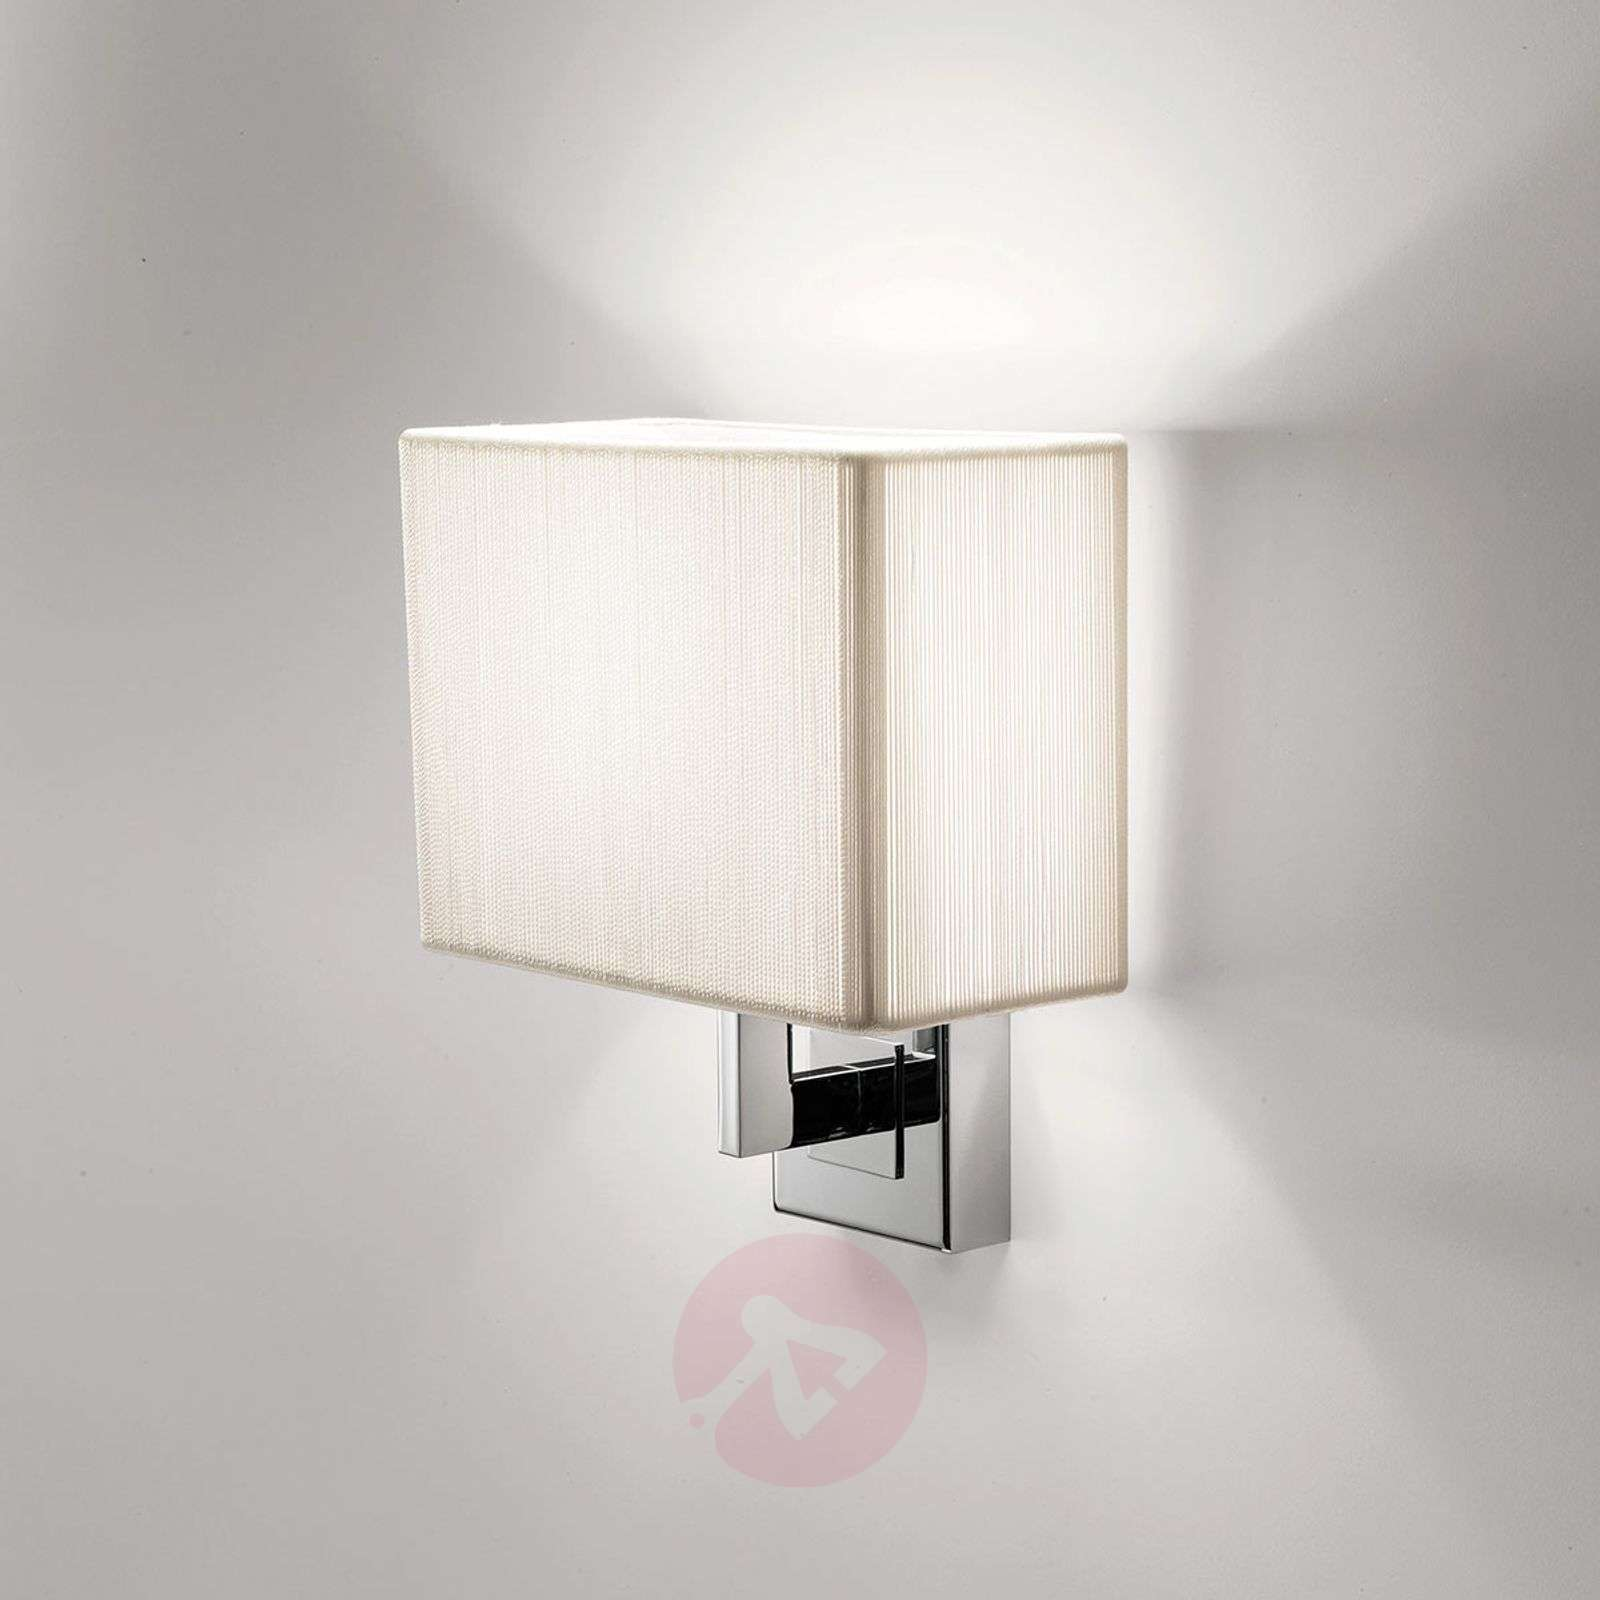 Axolight Clavius applique bianco/cromo-1088122-01